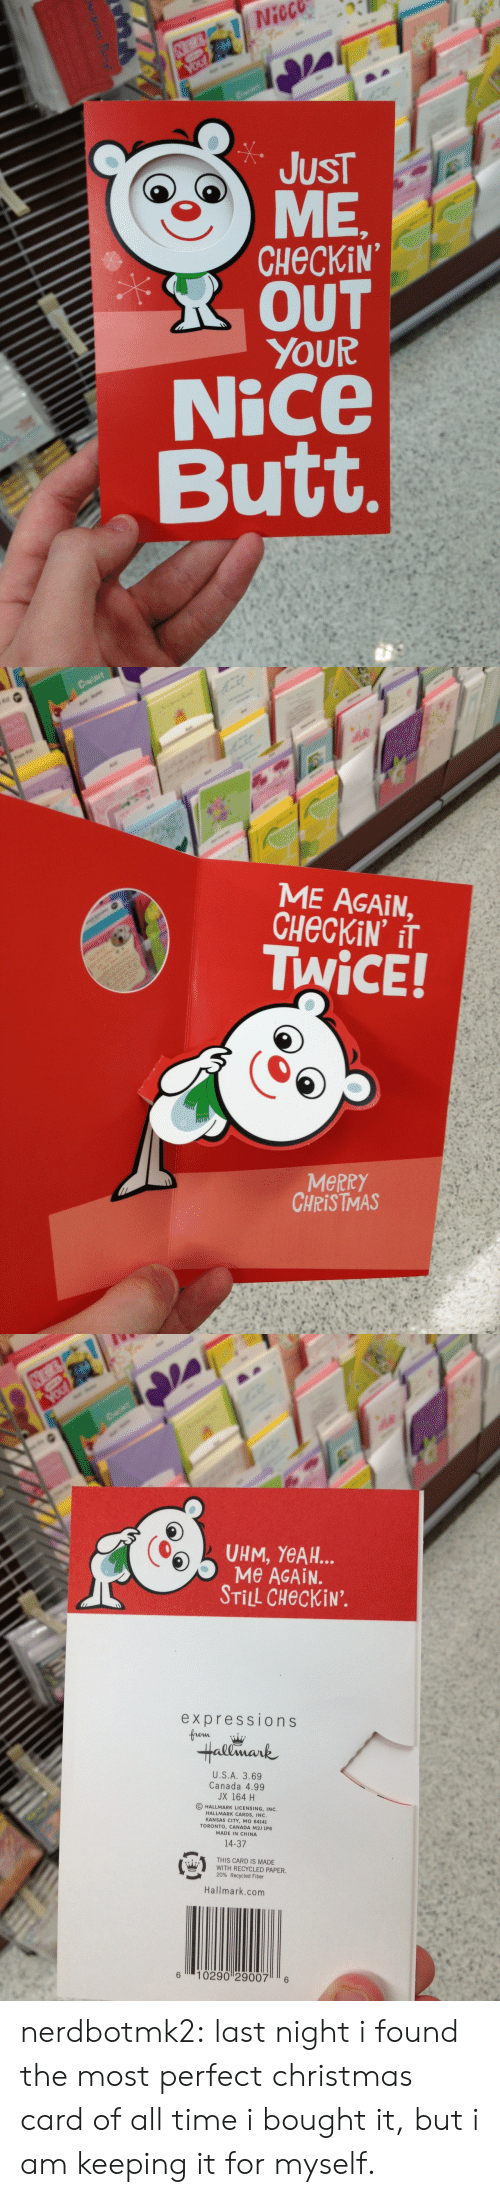 Butt, Christmas, and Tumblr: Nieco  JUST  CHECKiN  R OUT  YOUR  Nice  Butt   ME AGAIN,  TWiCE!  MeRRY  CHRISTMAS   UHM, YeAH..  Me AGAiN.  STİLL CHeckiN.  expressions  Hallmark  U.S.A. 3.69  Canada 4.99  JX 164 H  O HALLMARK LICENSING, INC.  HALLMARK CARDS, INC  KANSAS CITY, MO 64141  TORONTO, CANADA M2J 1P6  MADE IN CHINA  14-37  姭  THIS CARD IS MADE  WITH RECYCLED PAPER.  20% Recycled Fiber  es  Hallmark.com  6 10290 29007 6 nerdbotmk2:  last night i found the most perfect christmas card of all time i bought it, but i am keeping it for myself.